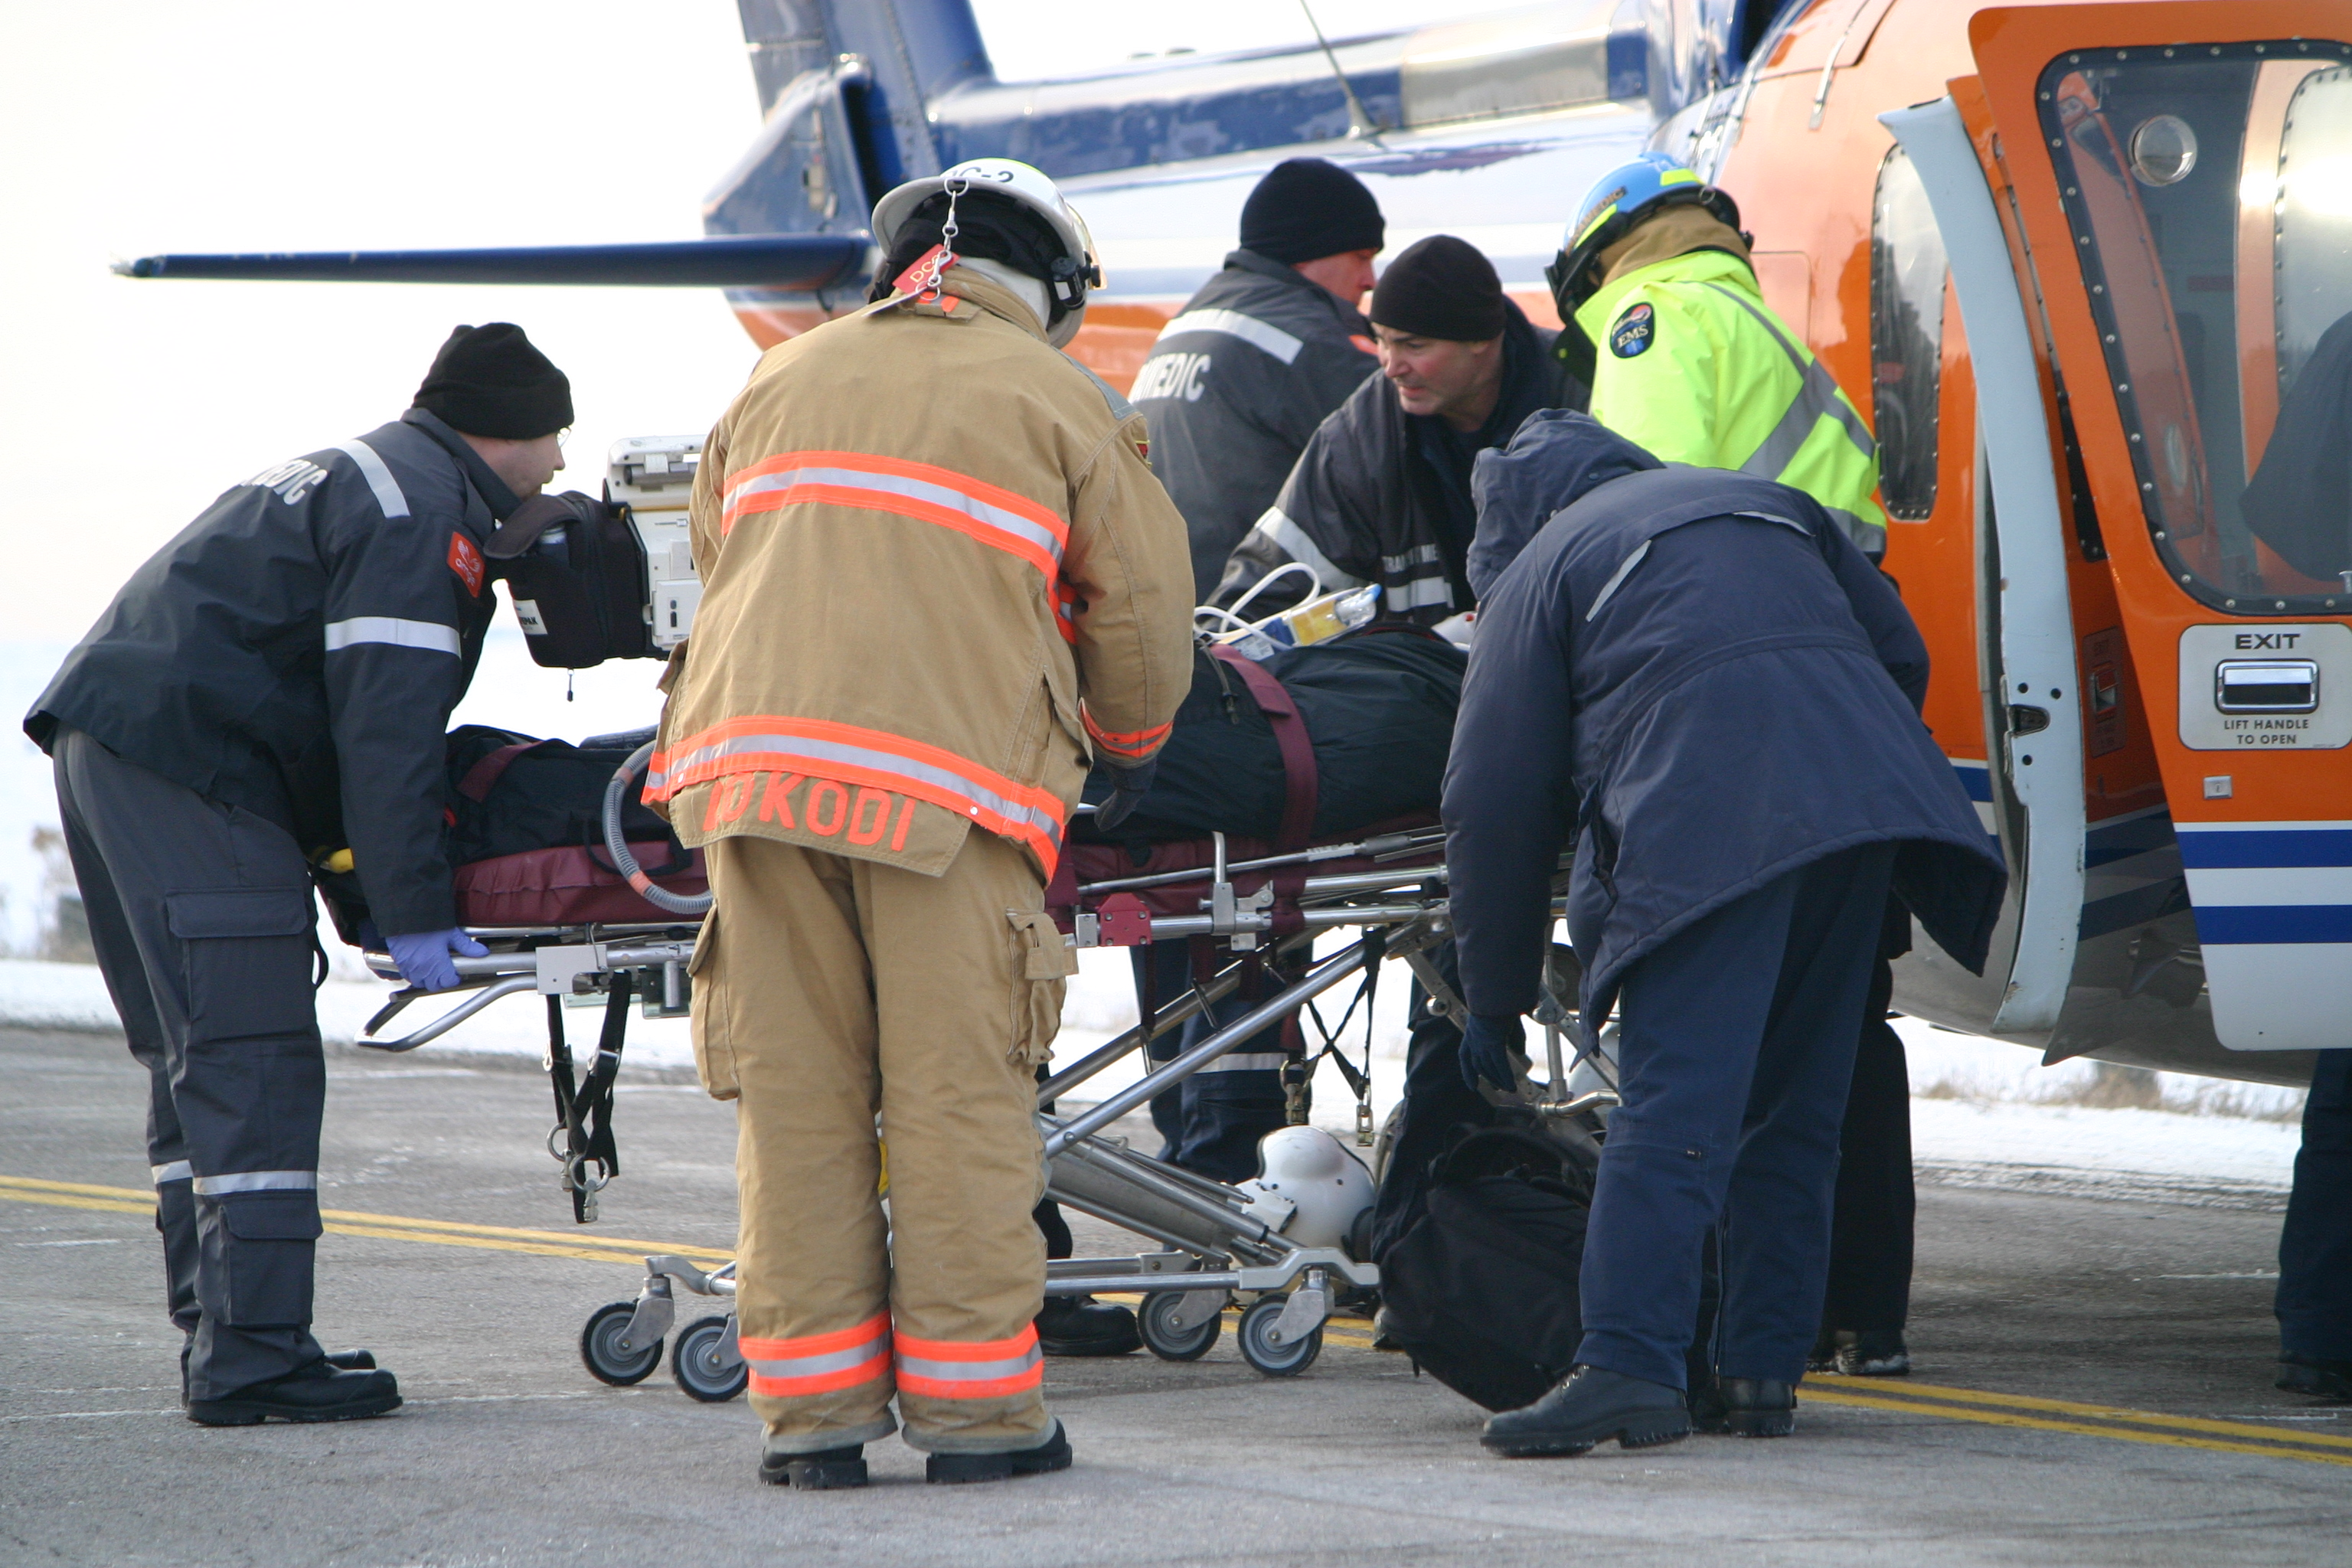 A woman is loaded into an air ambulance that landed on Ski Hill Rd. after a head-on crash near Lifford Rd. on Thursday, Jan. 6, 2011. She was flown to Toronto's Sunnybrook hospital with serious, life-threatening injuries. Another woman was also airlifted to the same hospital with serious injuries. JASON BAIN/THE LINDSAY POST/QMI AGENCY